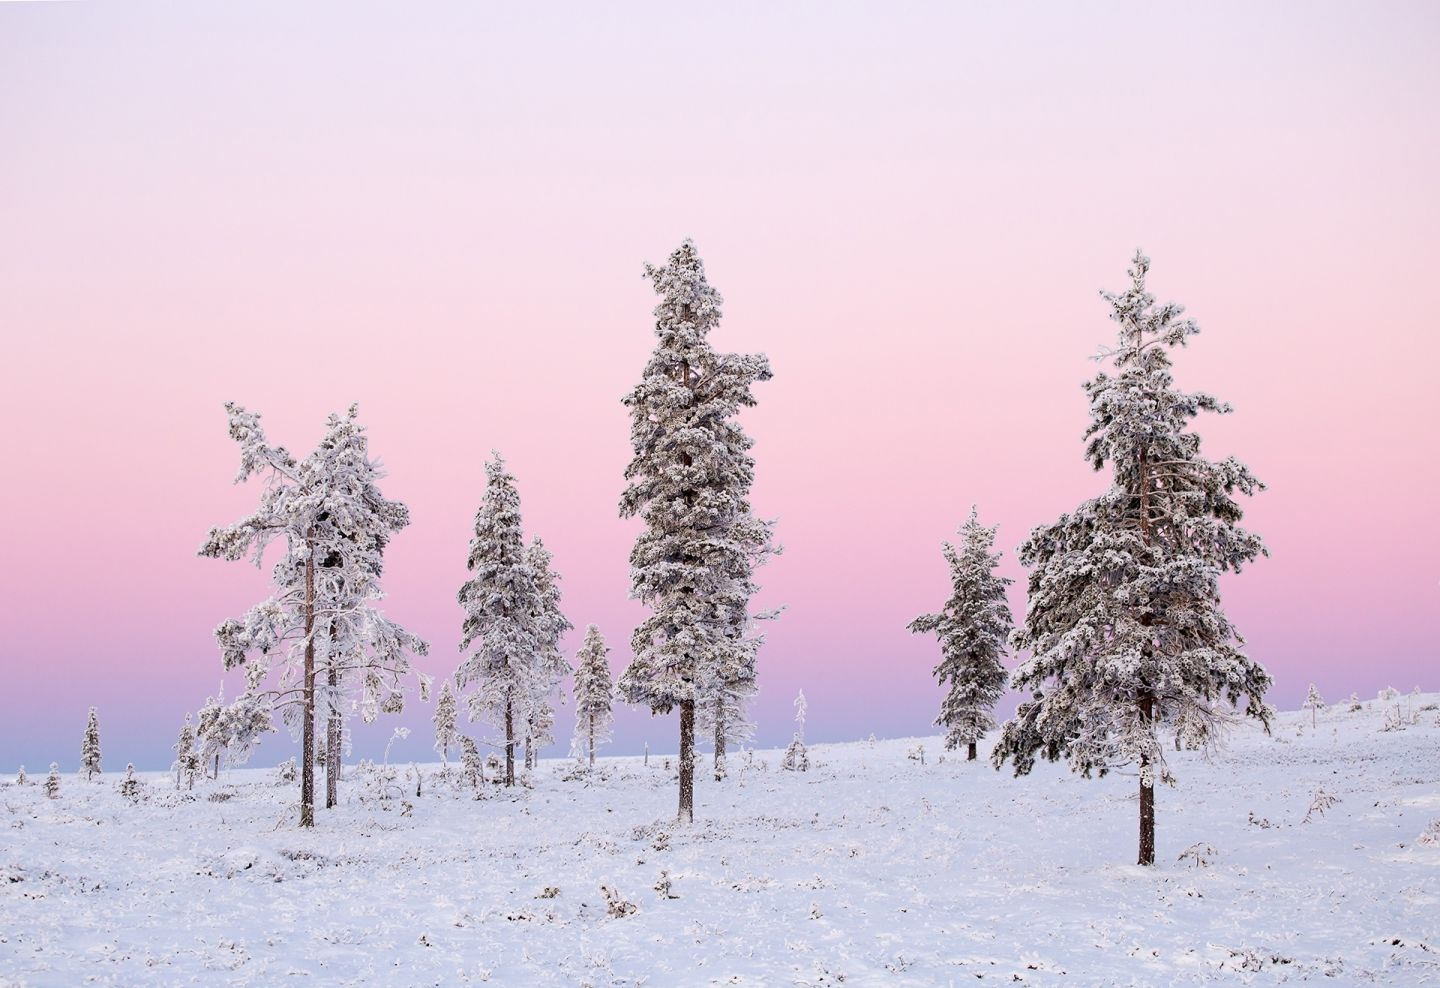 Snowy Arctic scenery with a pink sky on a winter day